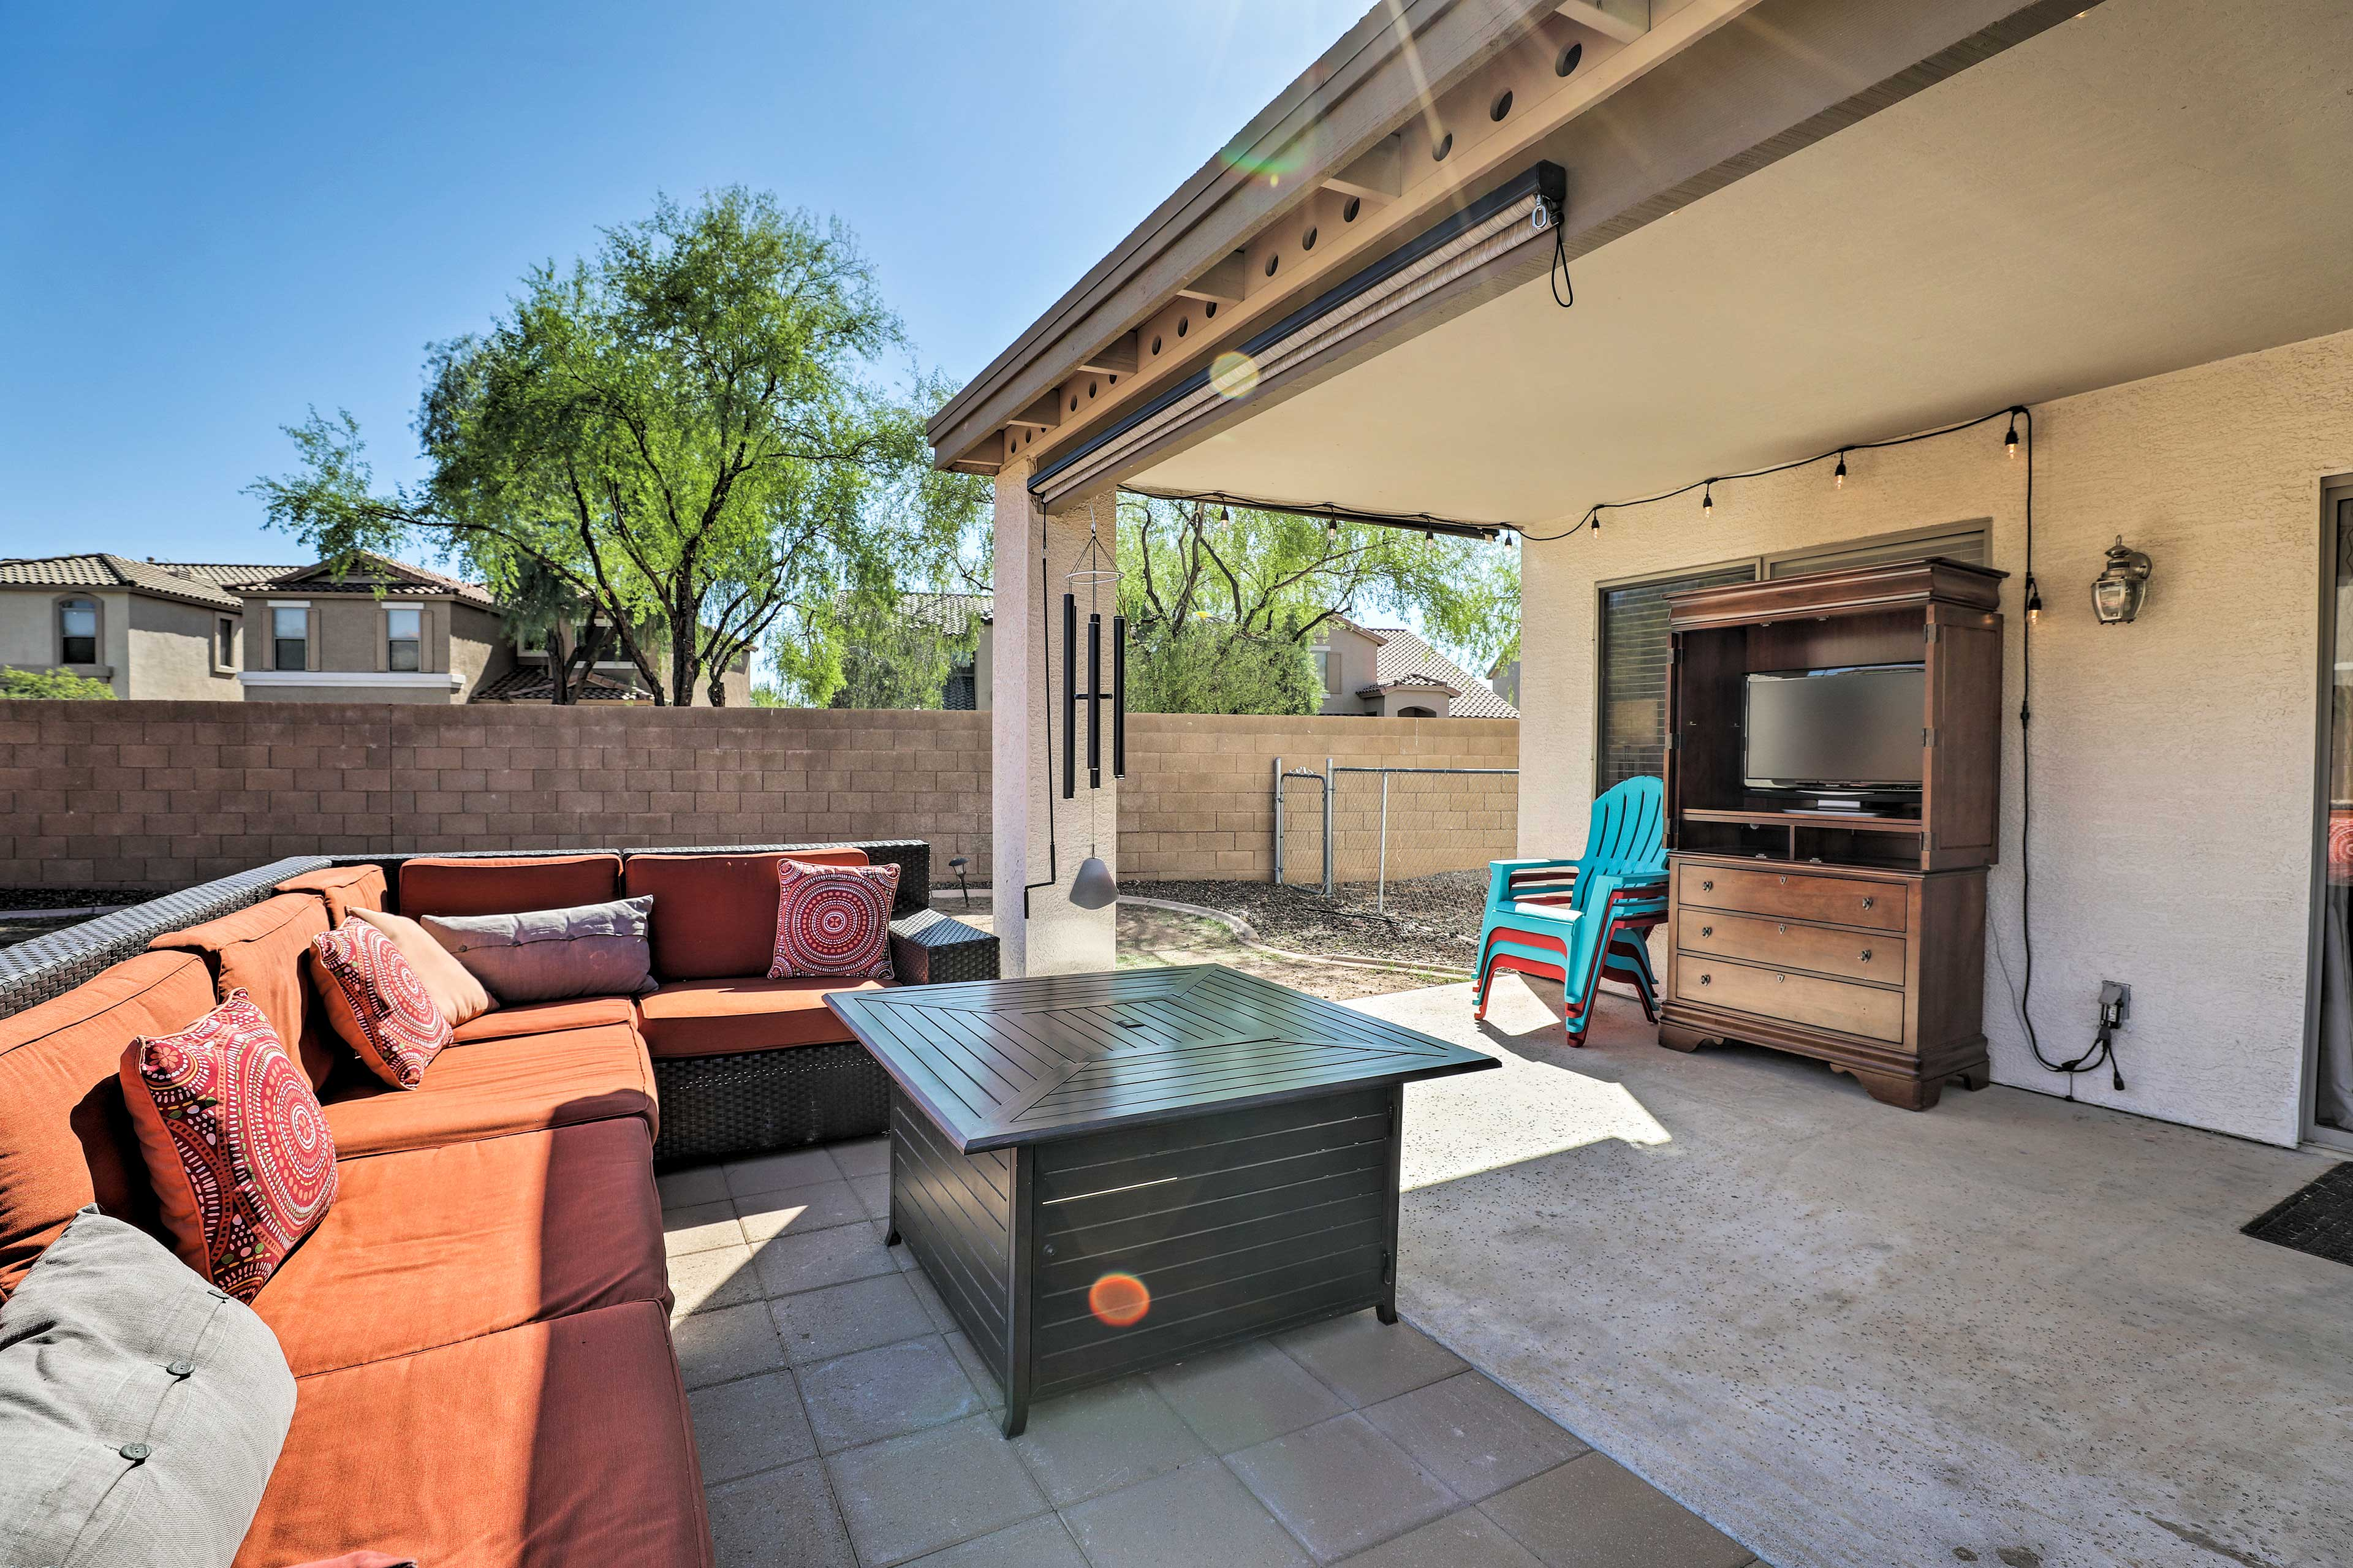 Outdoor Sitting Area   Flat-Screen Cable TV